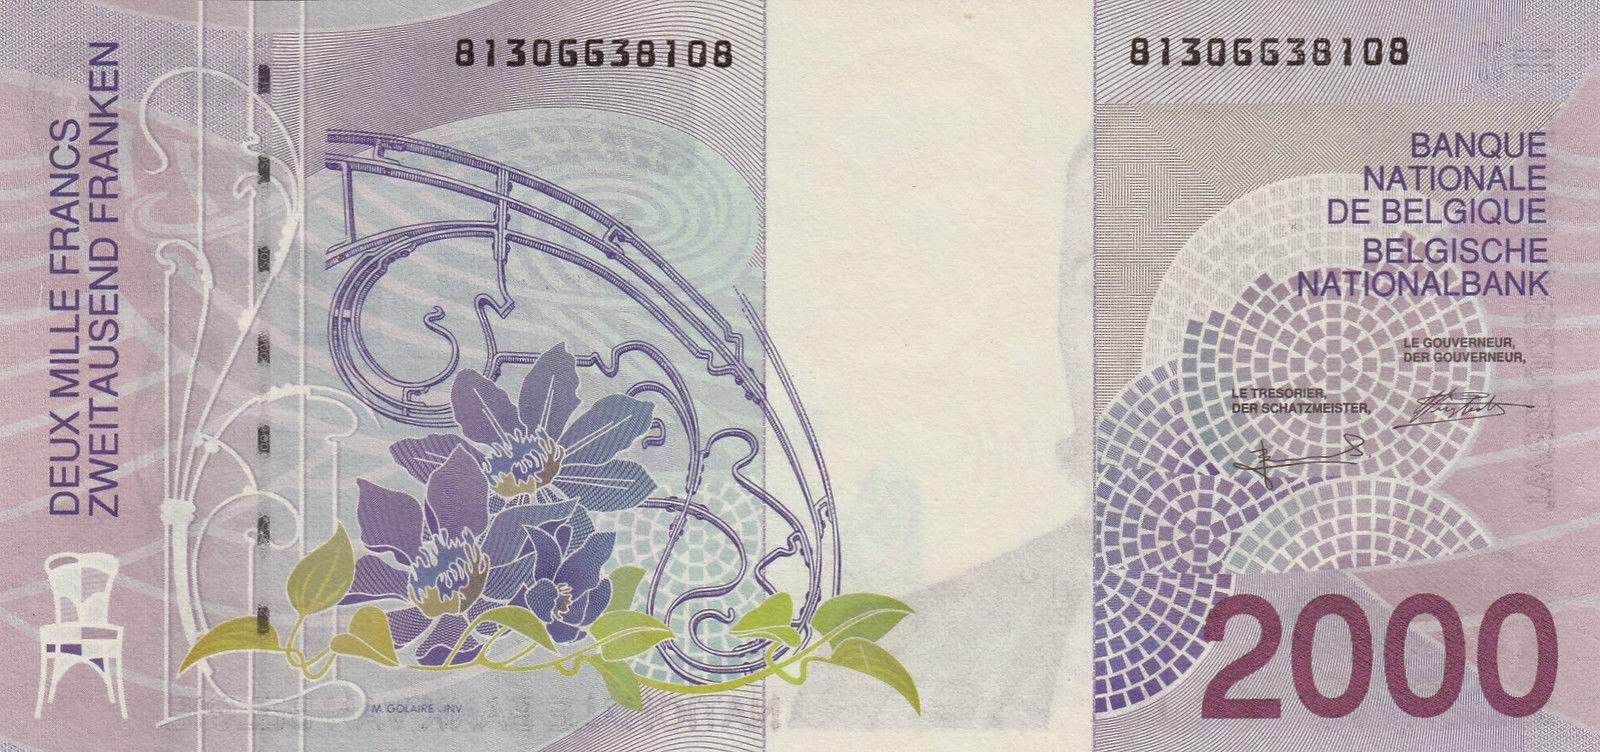 Belgium Money Currency 2000 Belgian Francs banknote 1994 Art Nouveau Victor Horta